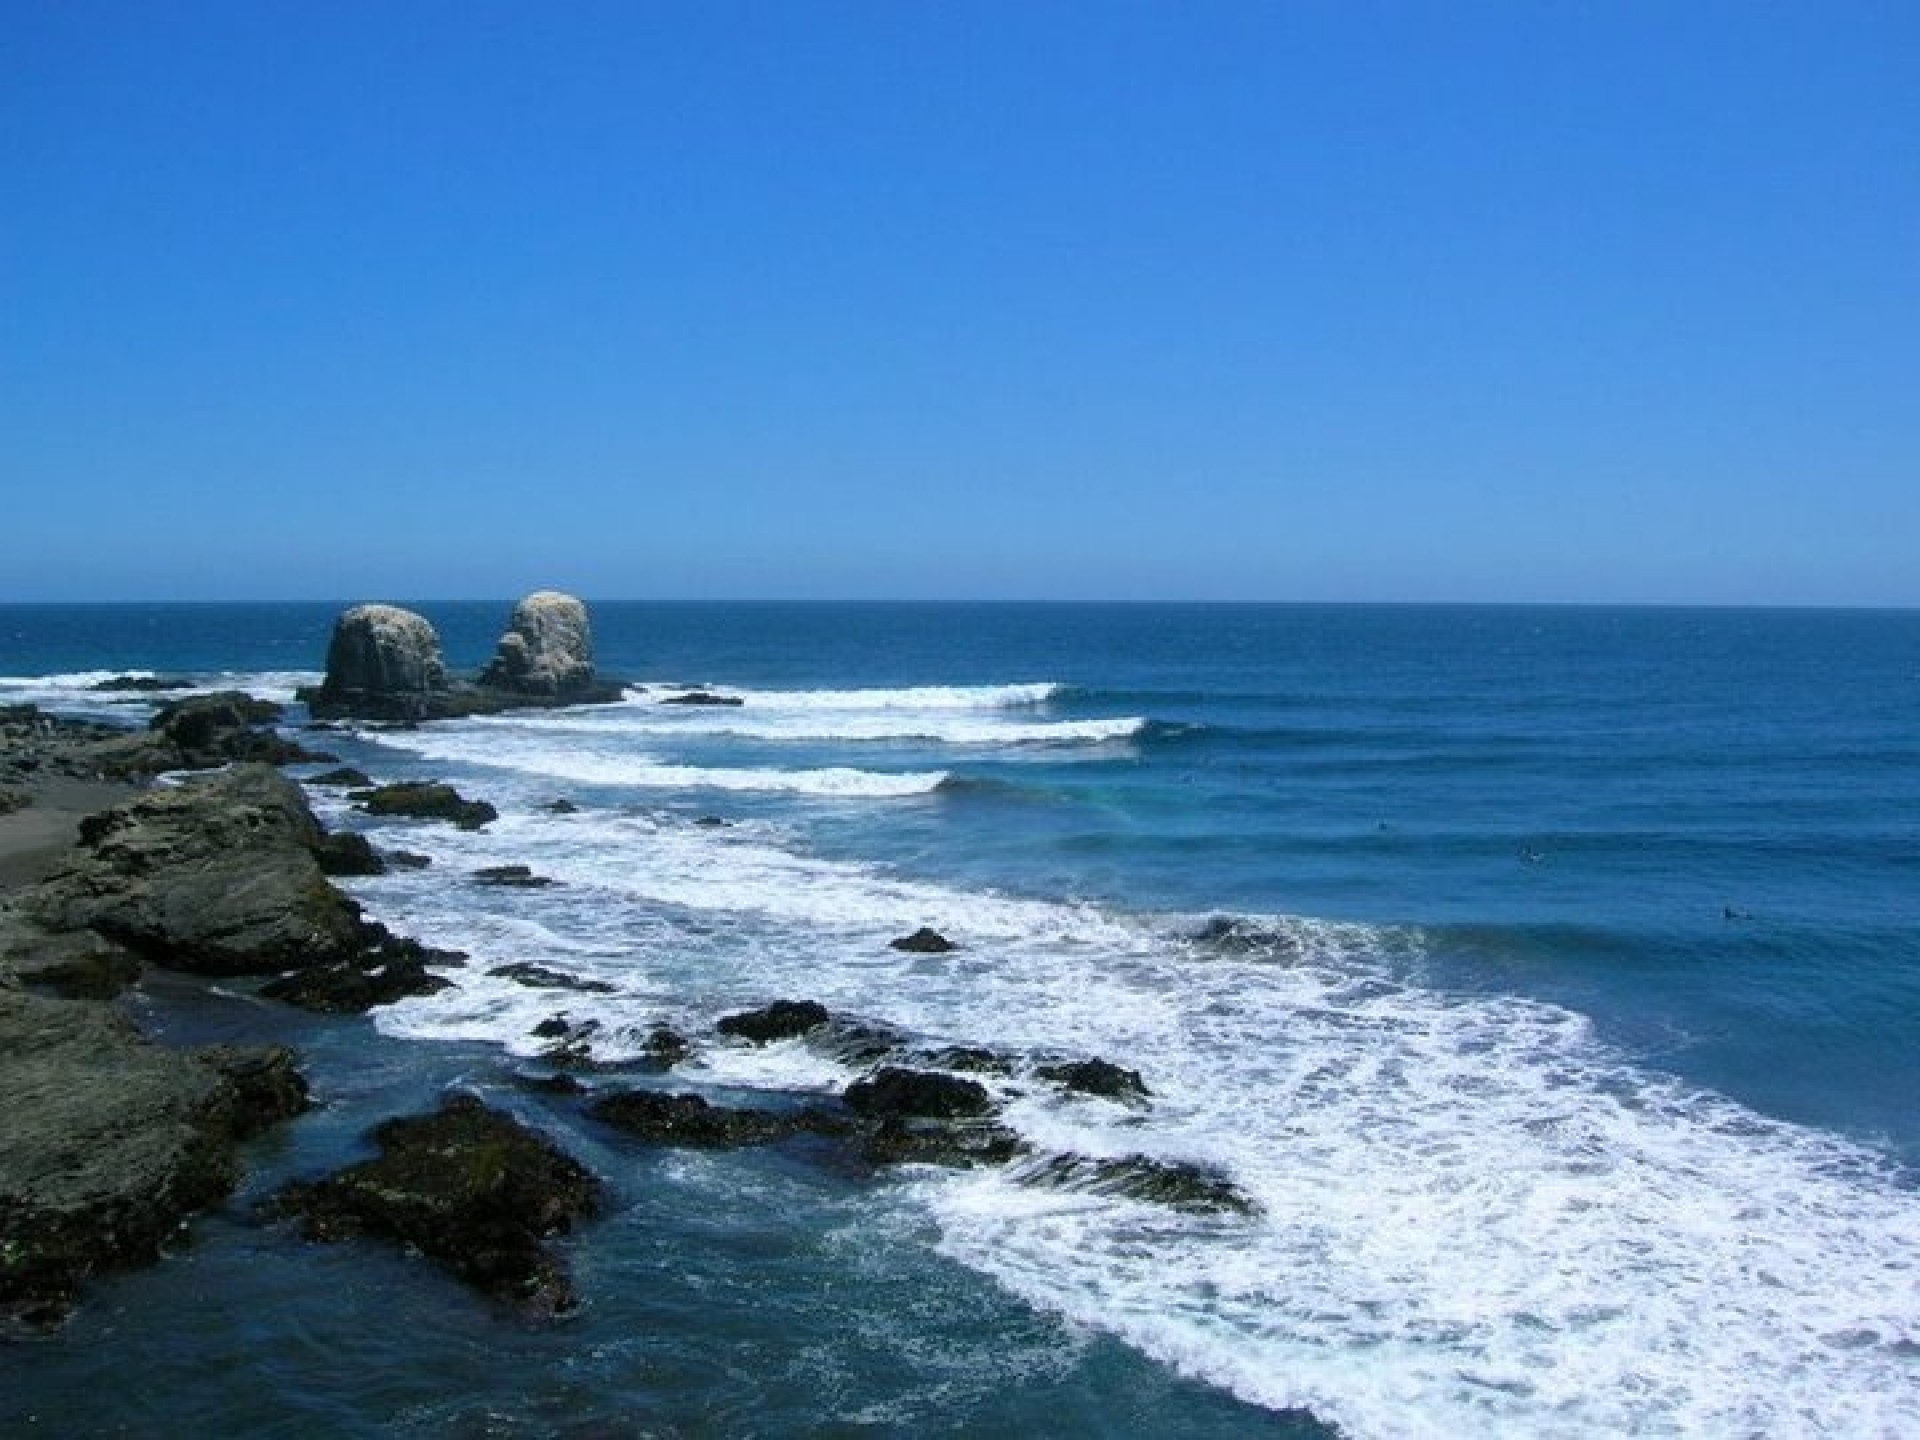 mathiasbuzios's photo of Punta de Lobos